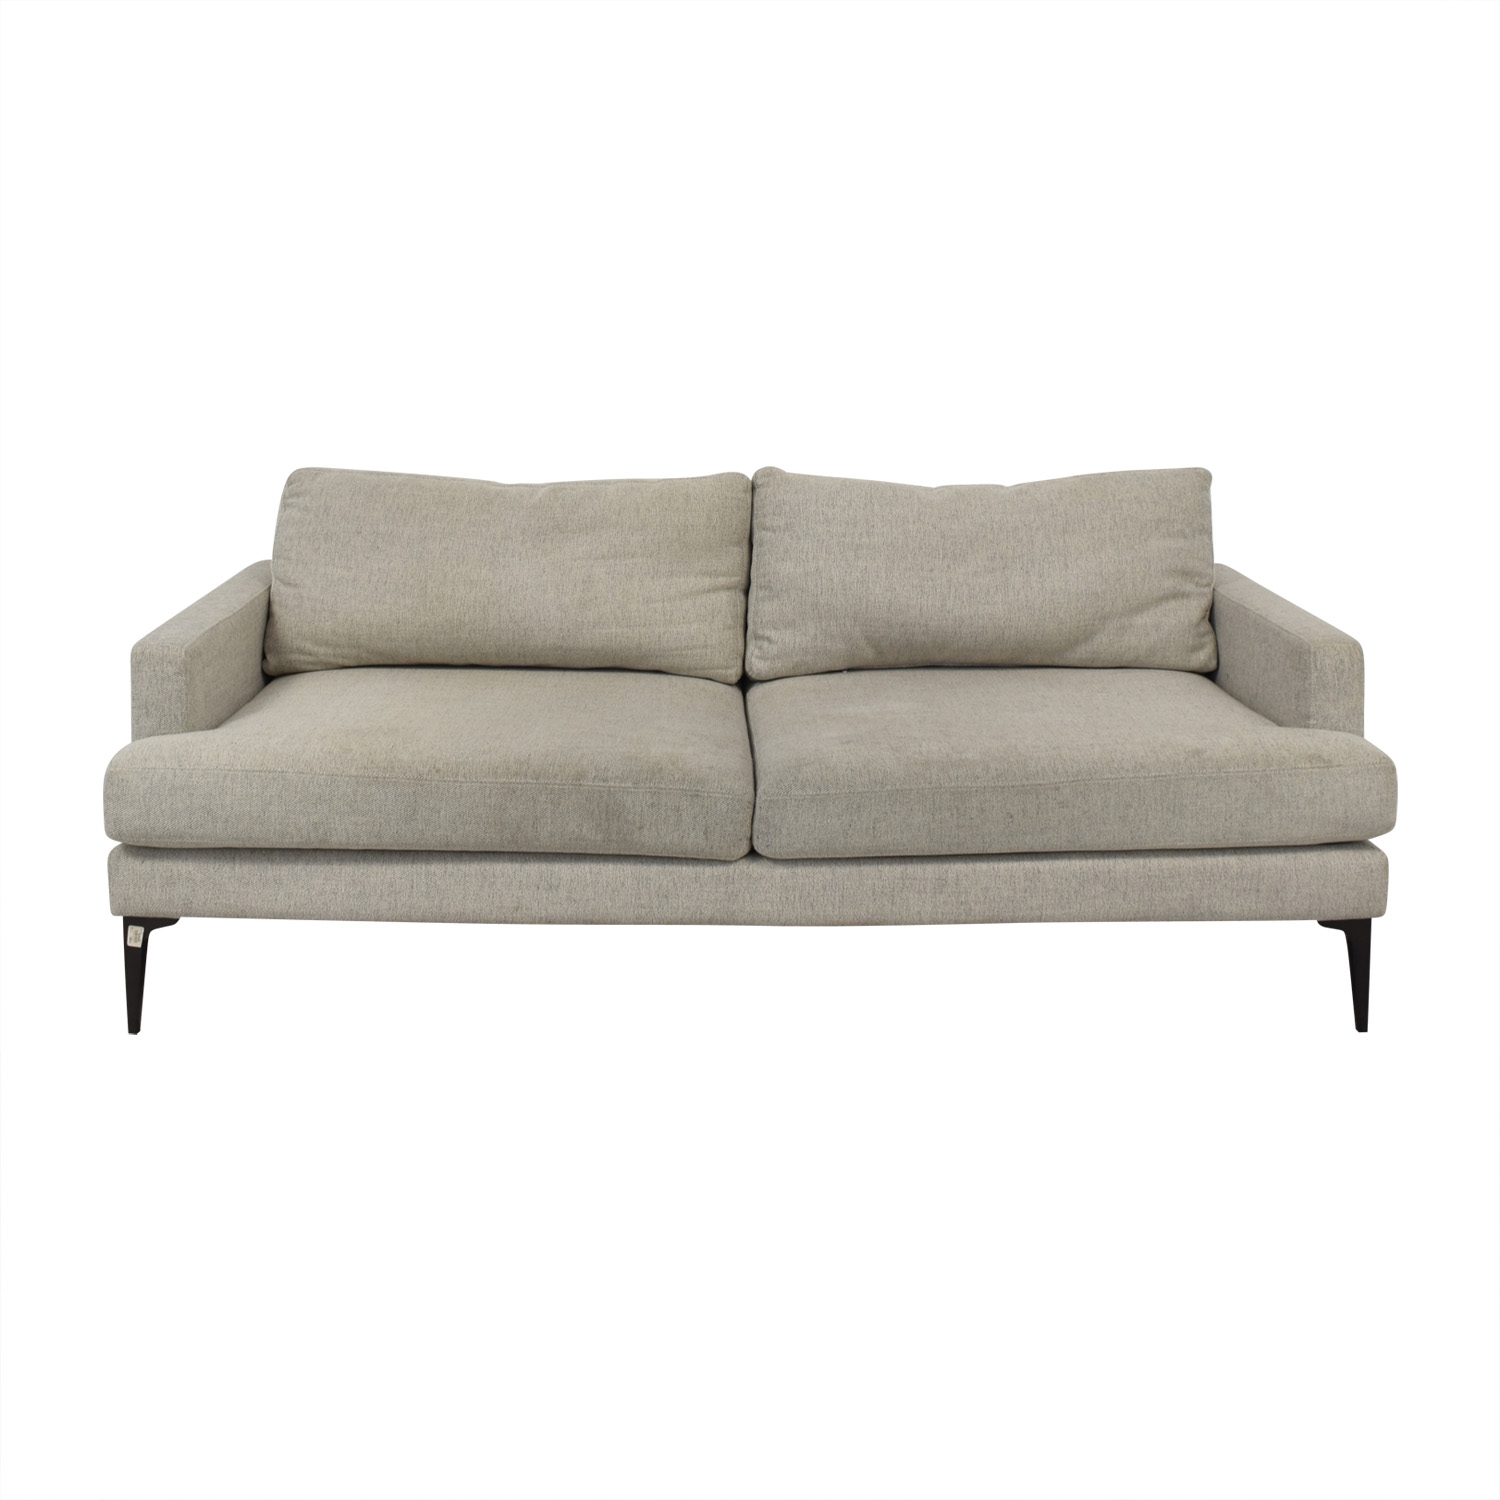 West Elm West Elm Andes Sofa used